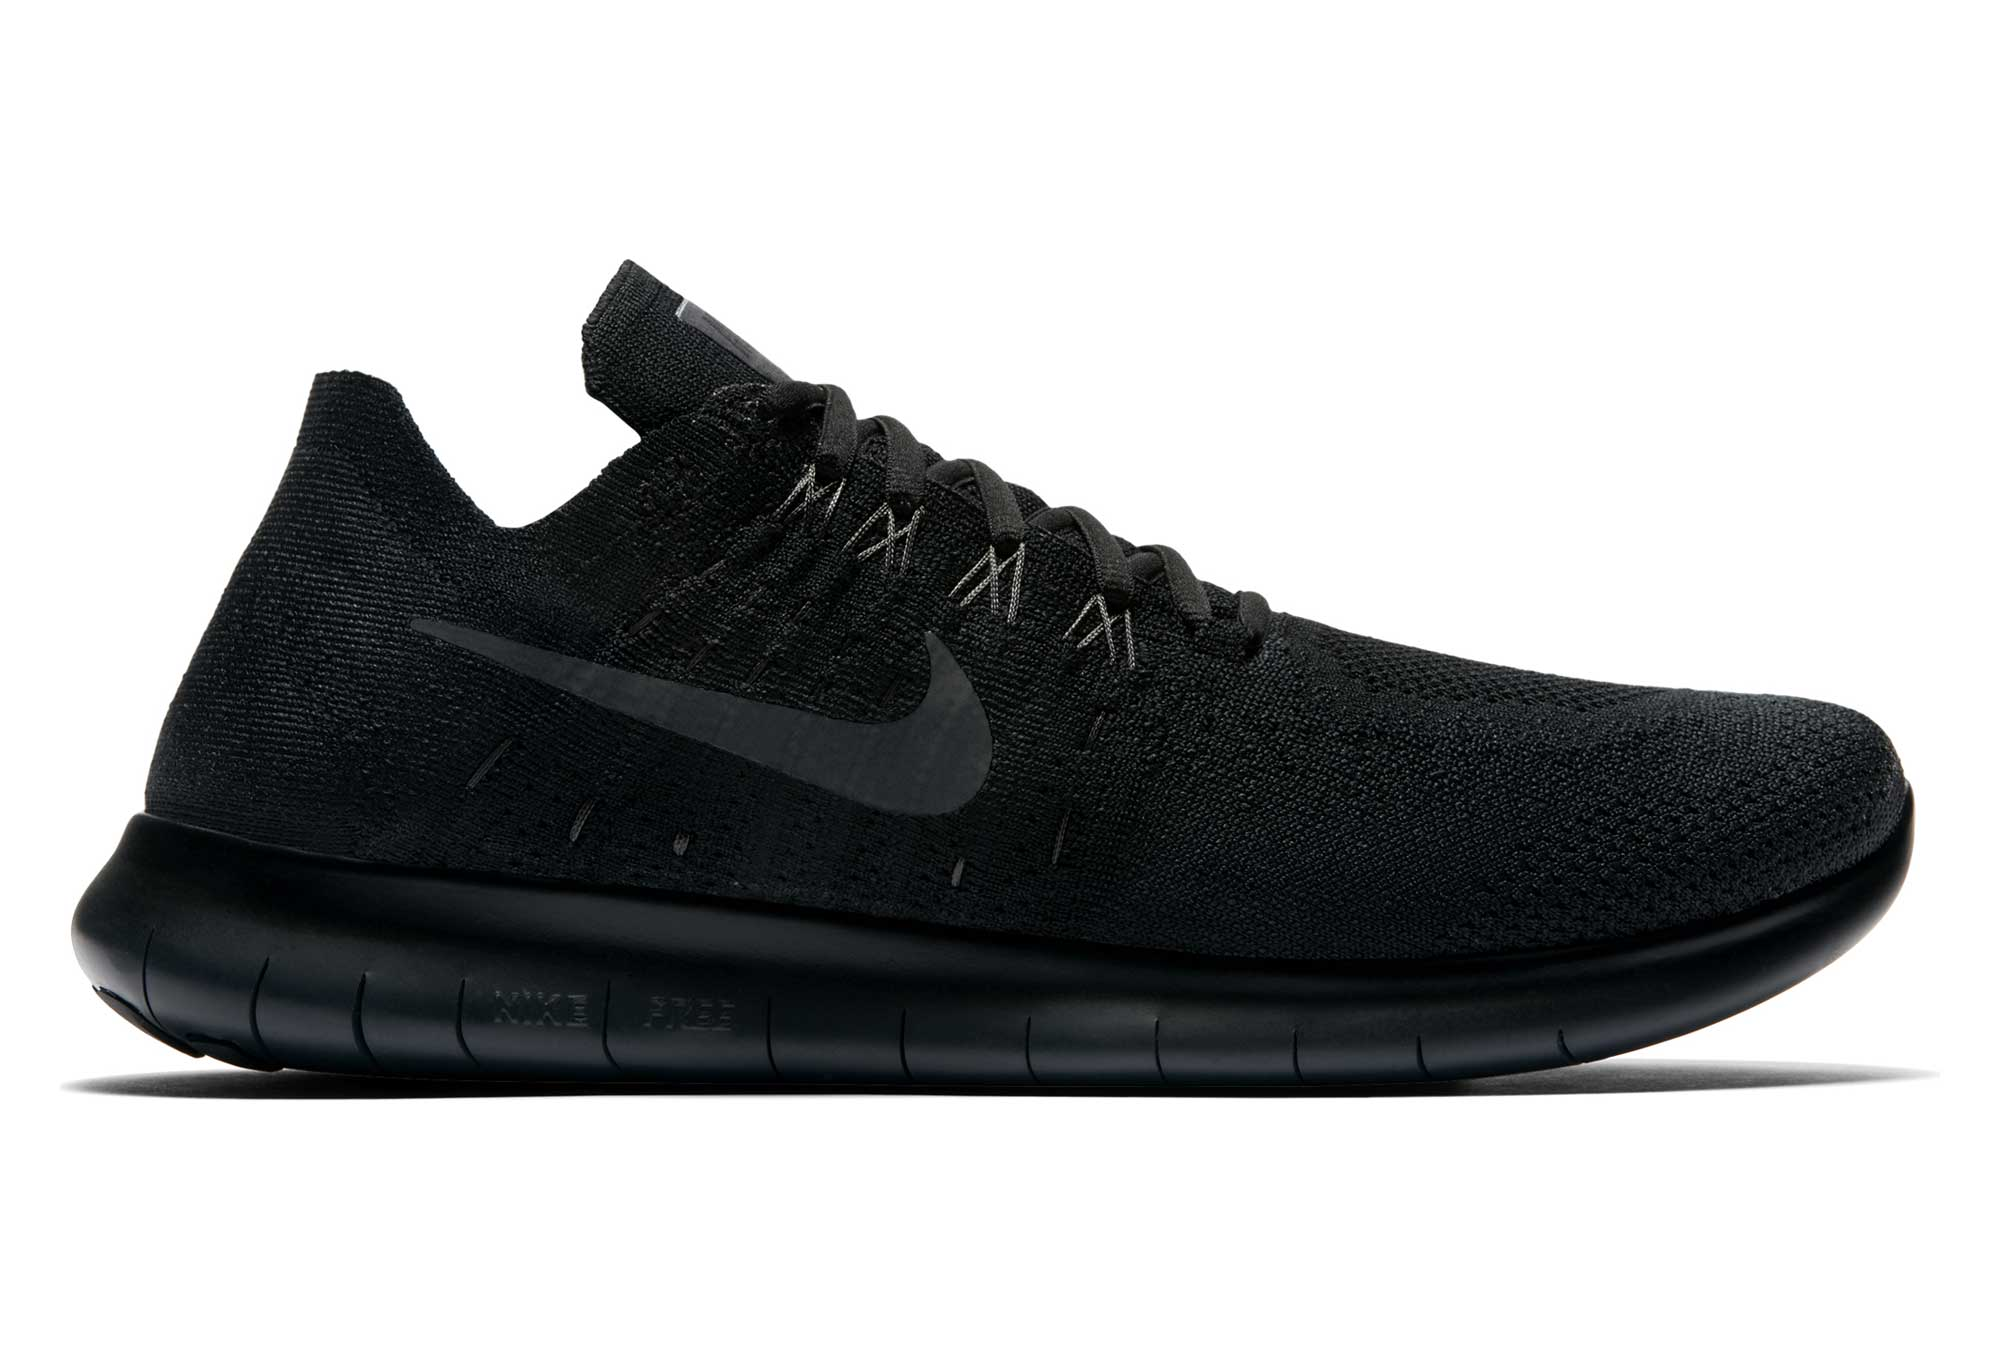 new arrivals f4aca 2edbe Nike Free RN Flyknit 2017 Black Grey Men   Alltricks.com